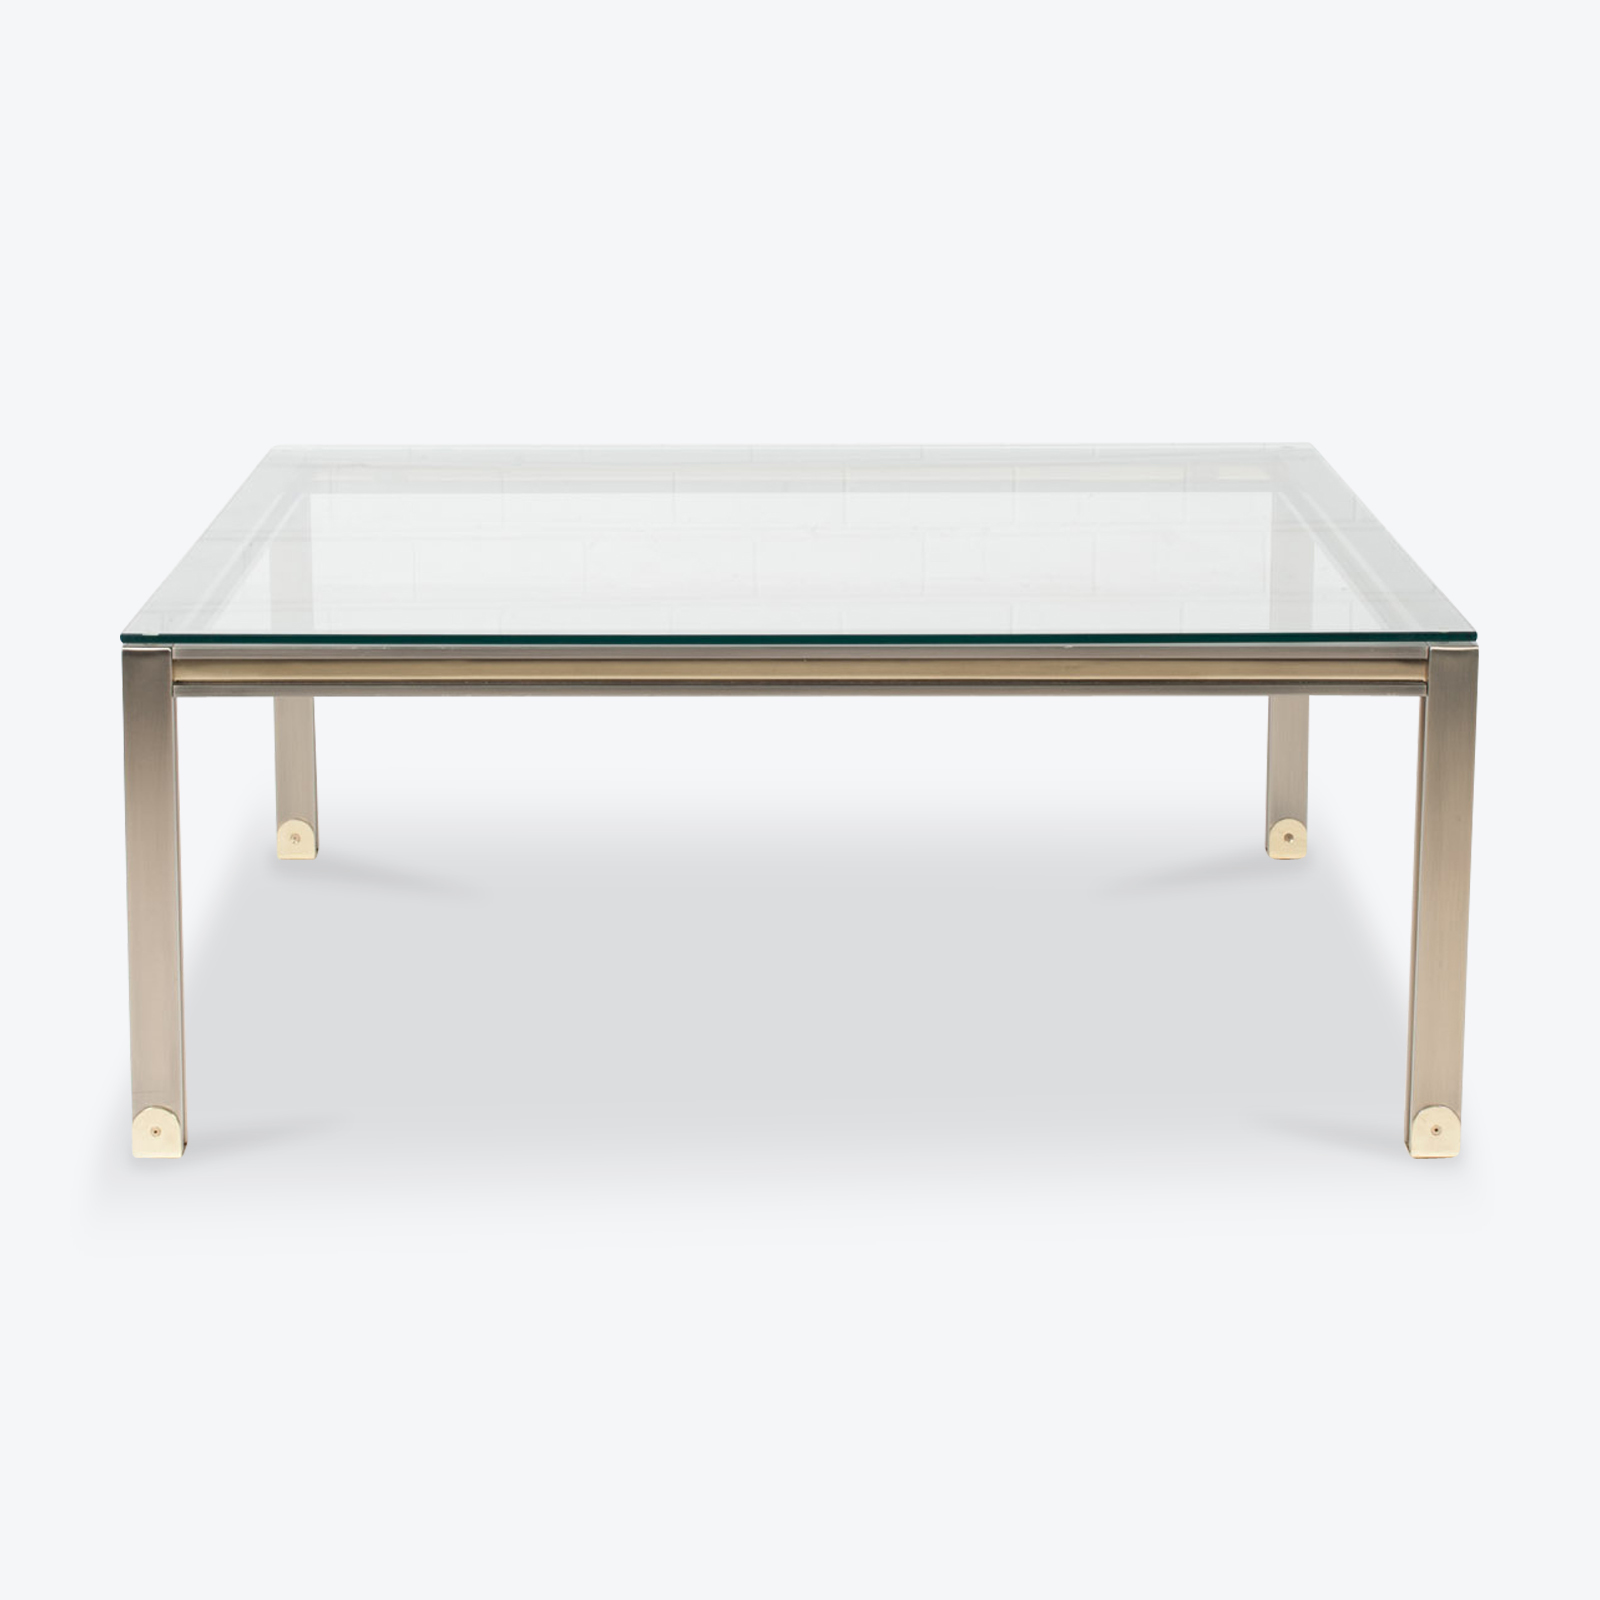 Coffee Table By Romeo Rega In Chrome And Brass 1970s Italy 01